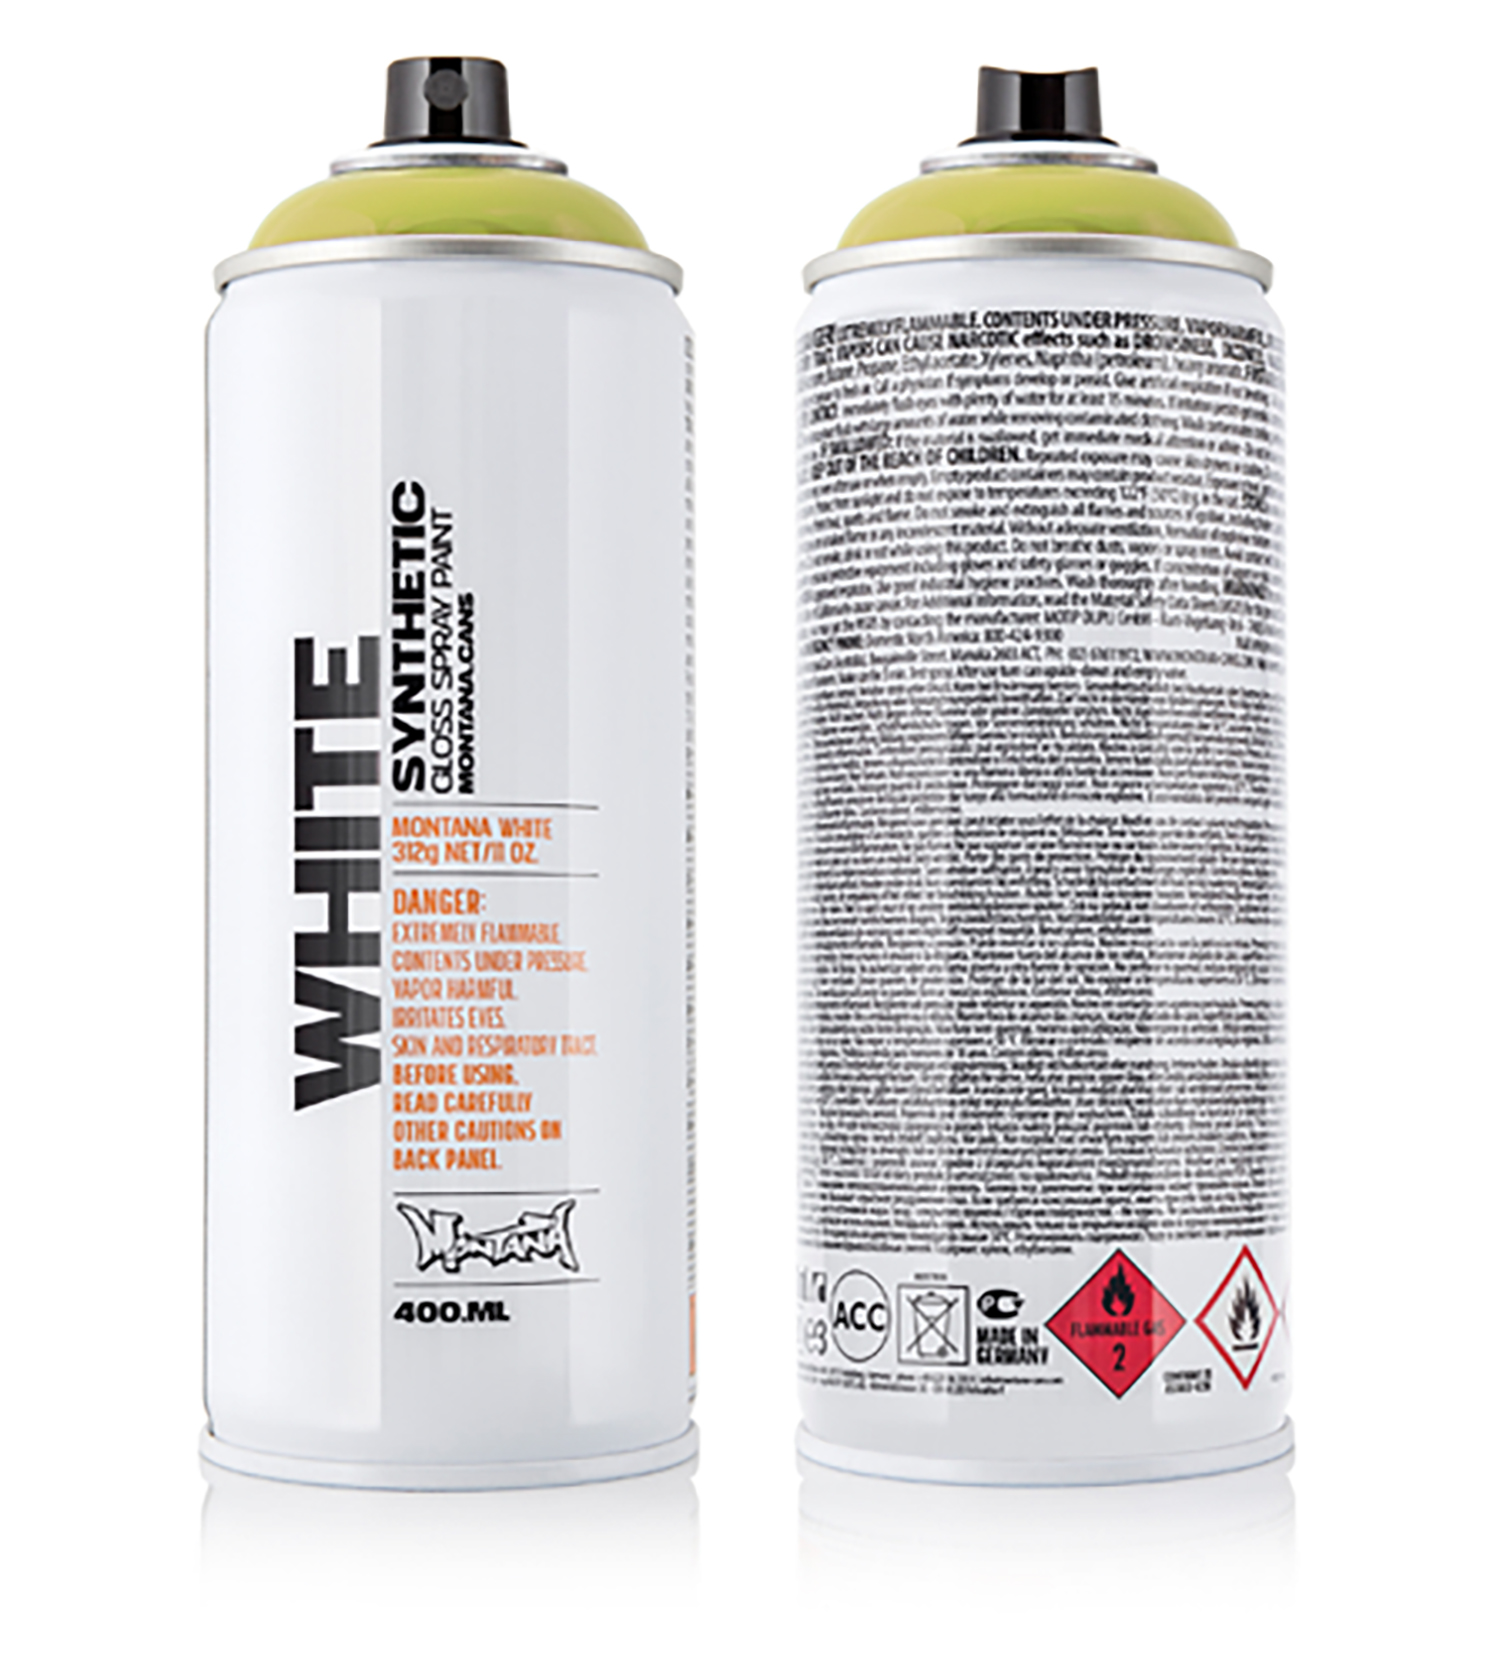 MONTANA-WHITE-SPRAY-400ML-1110